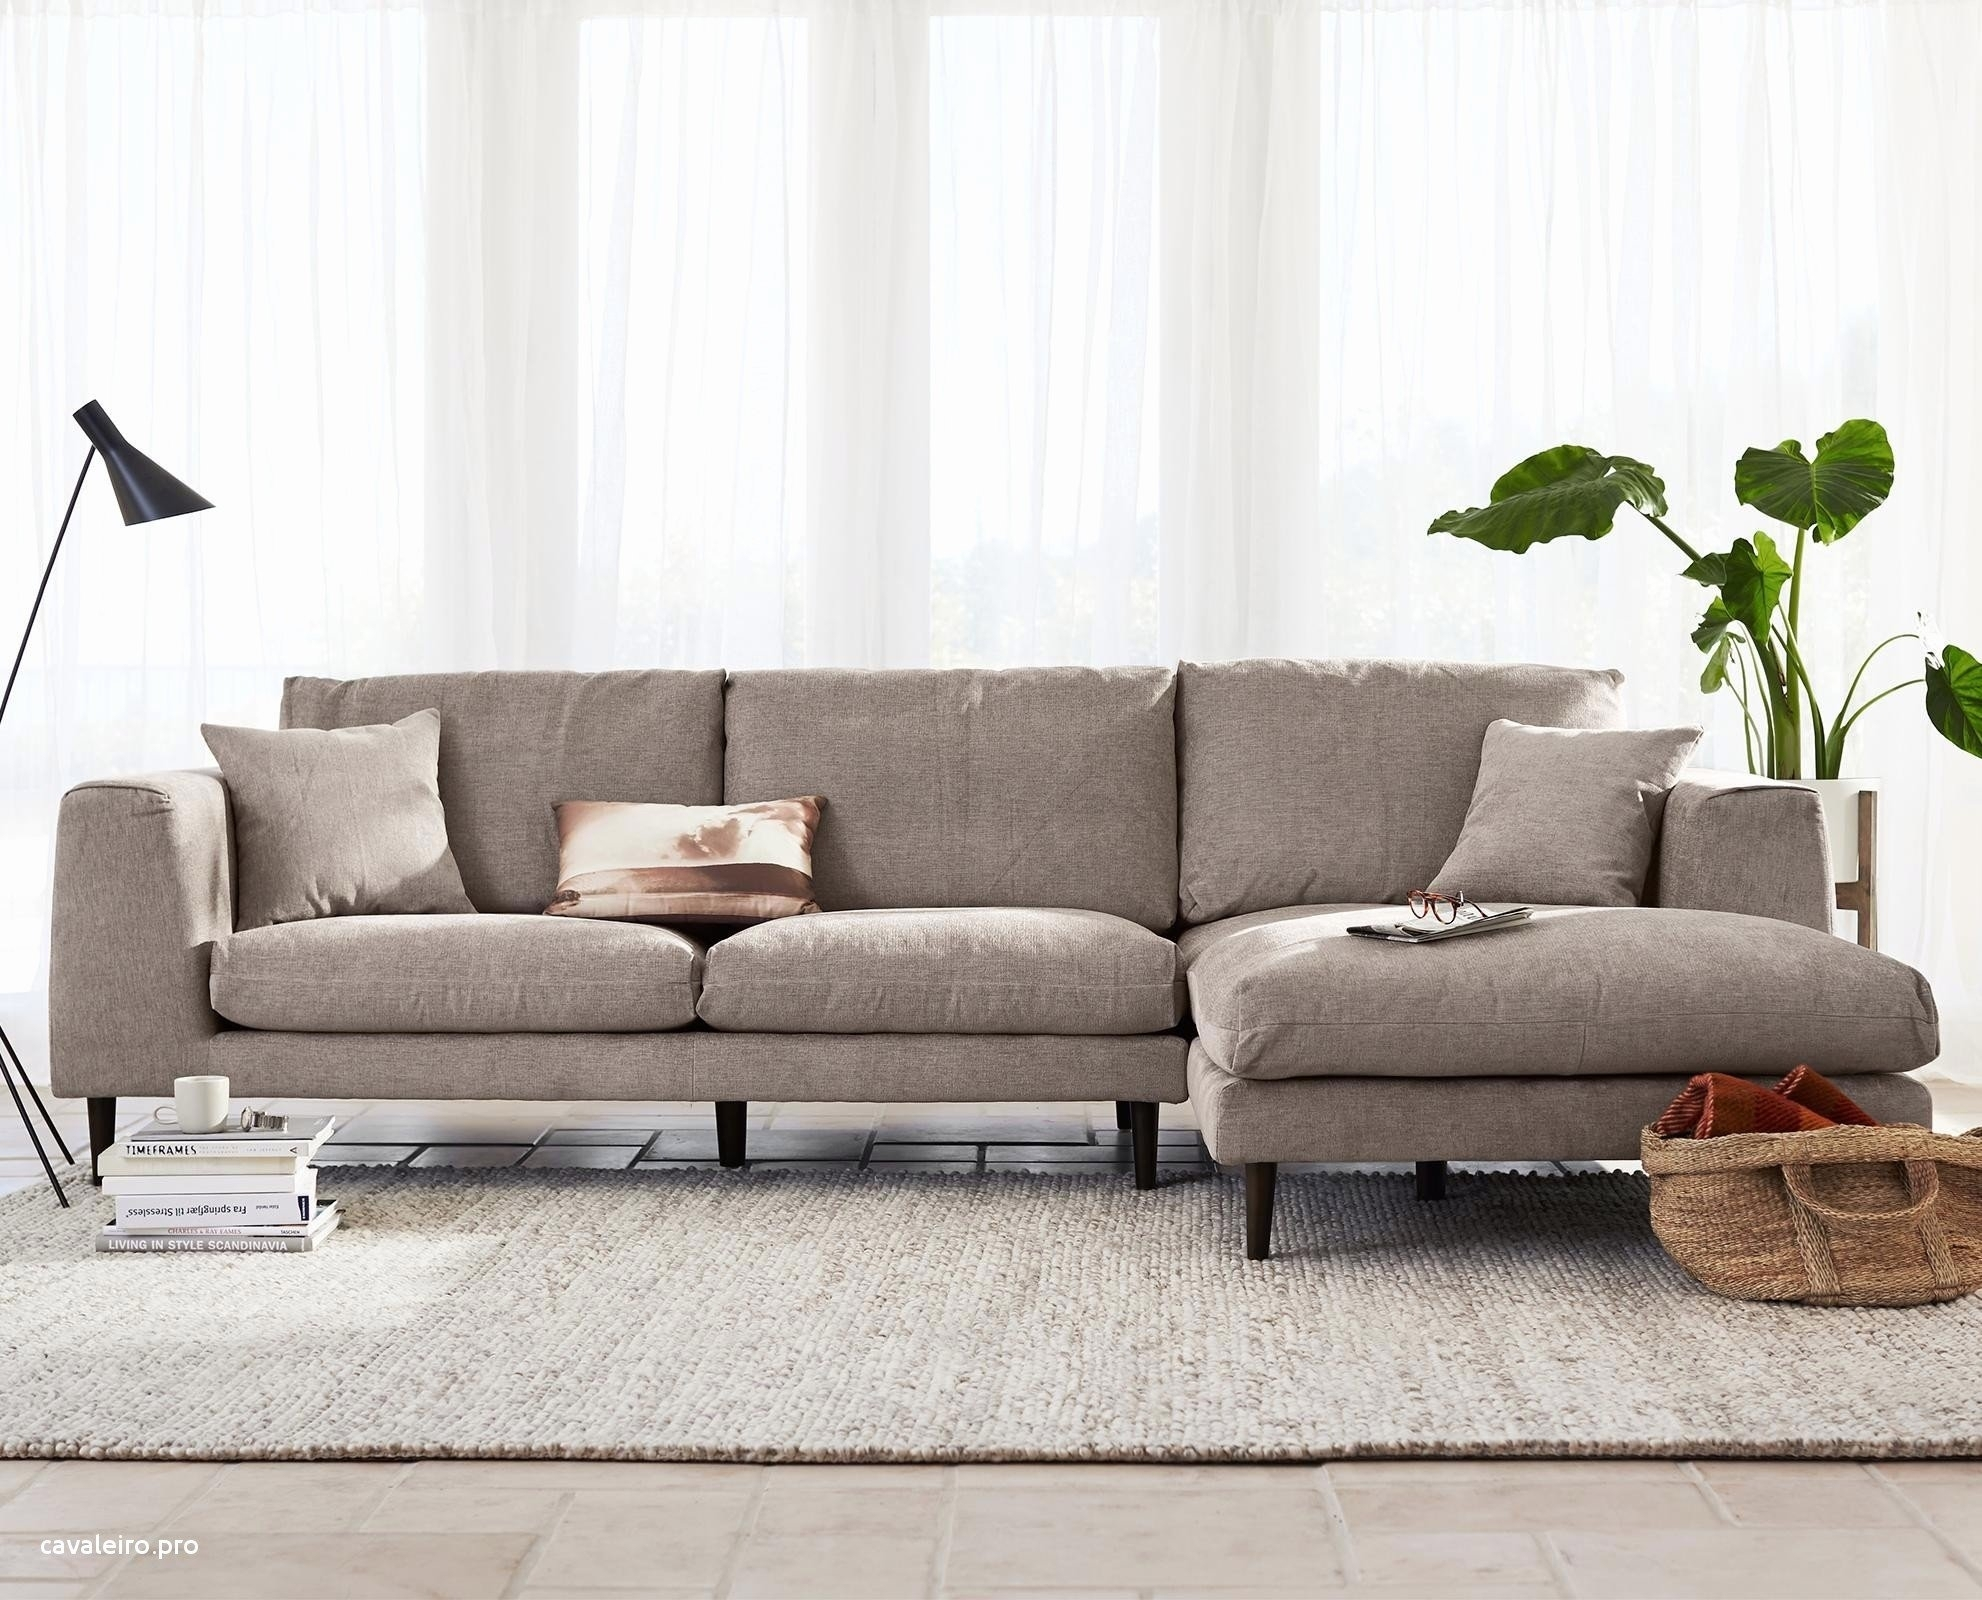 Vast 25 Genuine Leather Reclining Sectional Ideal with regard to Burton Leather 3 Piece Sectionals With Ottoman (Image 29 of 30)